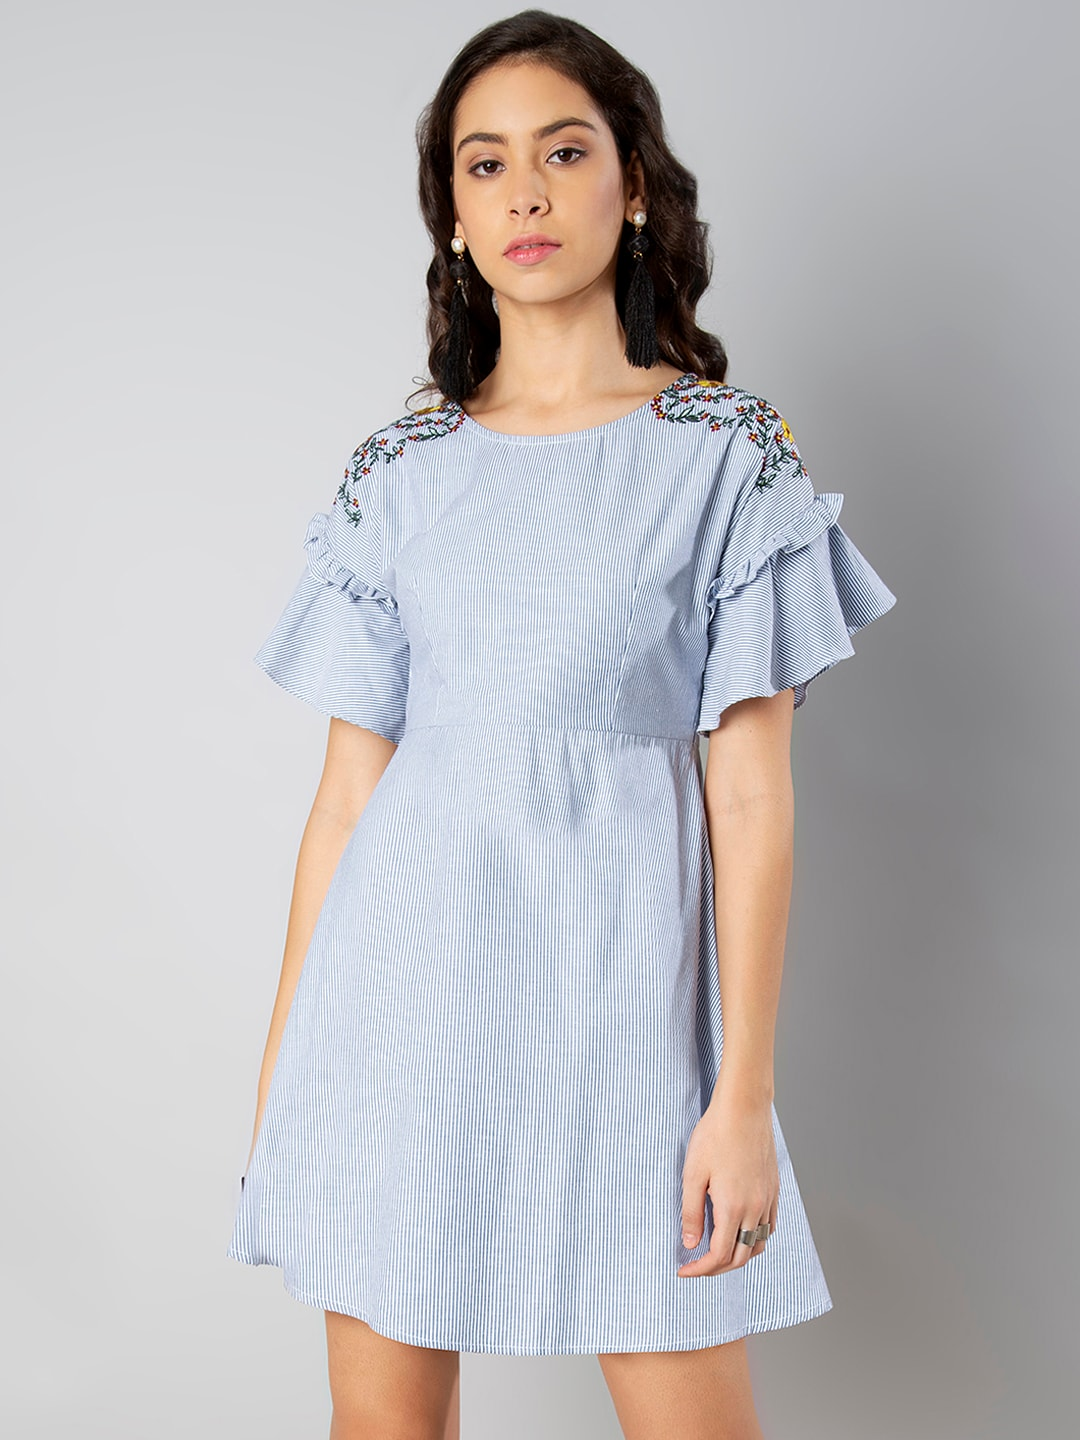 6e24ed5a19d Faballey Dresses Jumpsuit - Buy Faballey Dresses Jumpsuit online in India